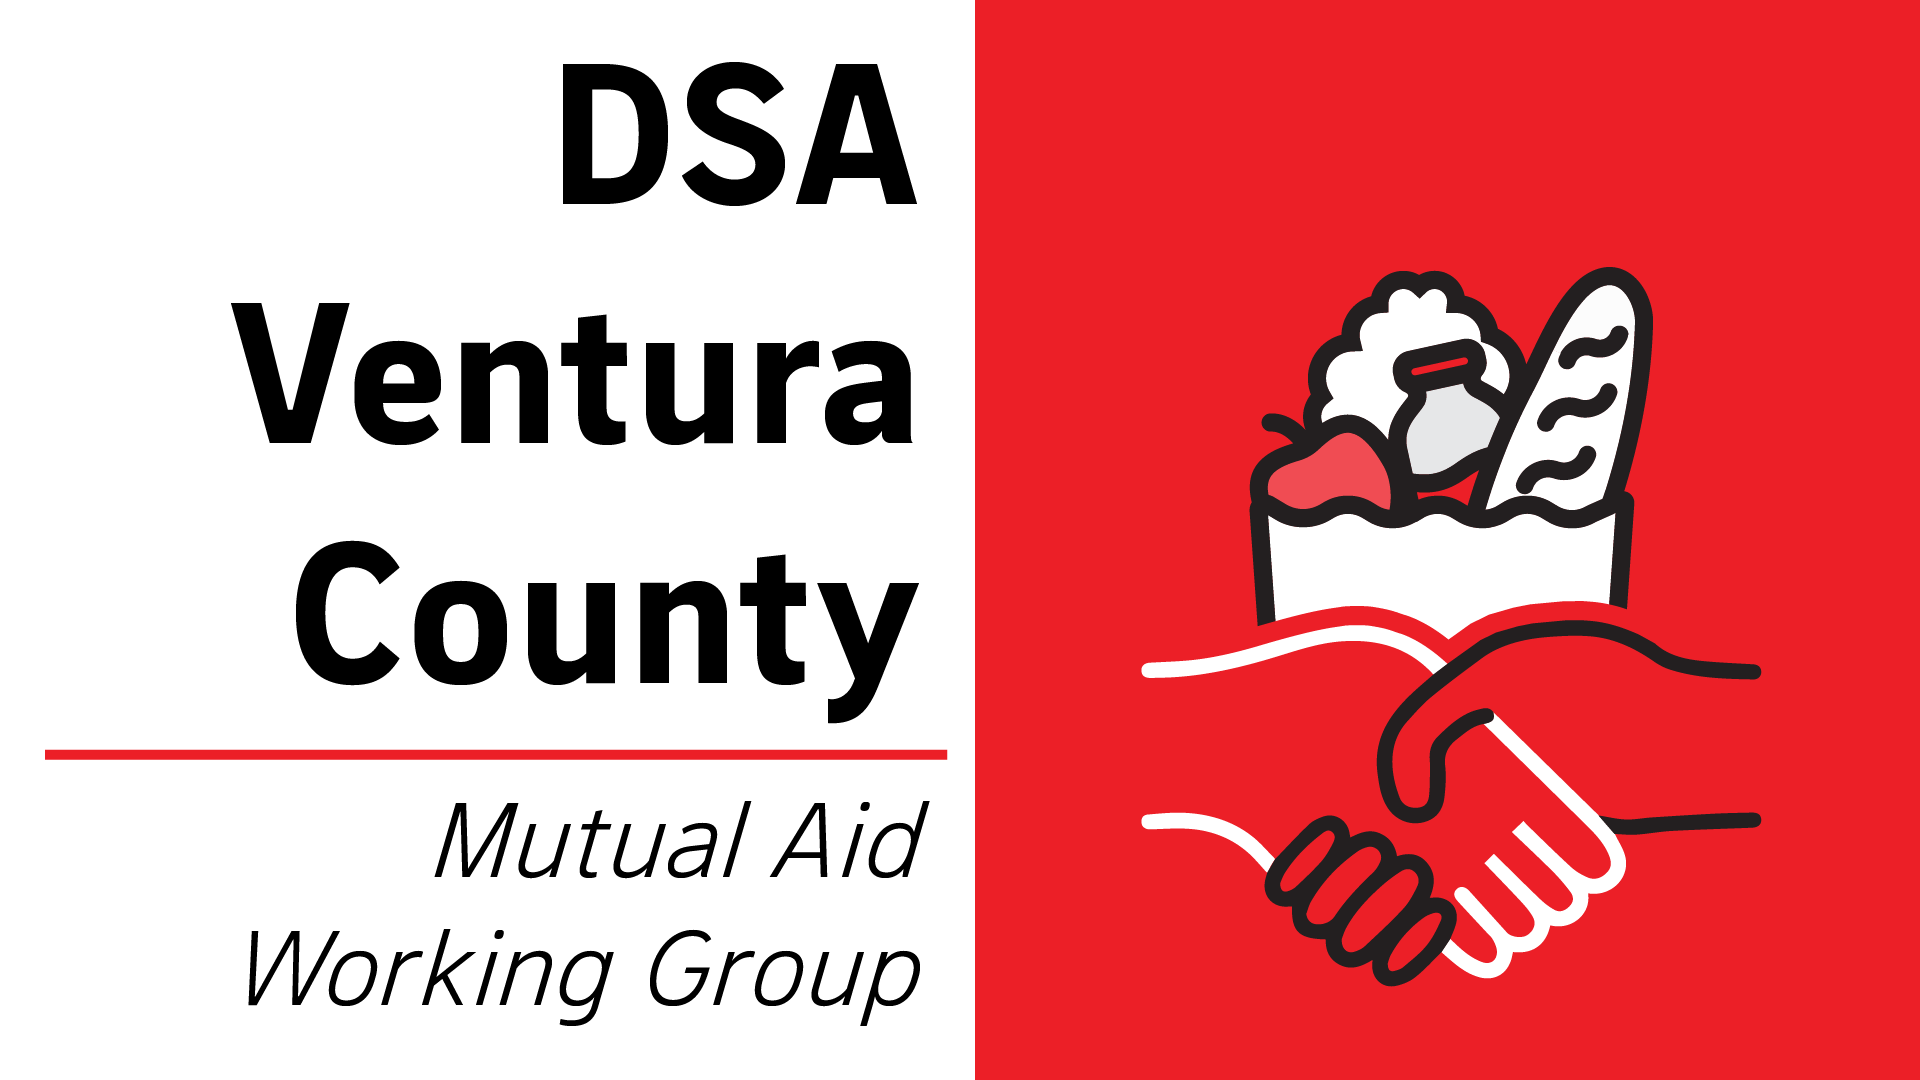 Mutual Aid Working Group Web Banner